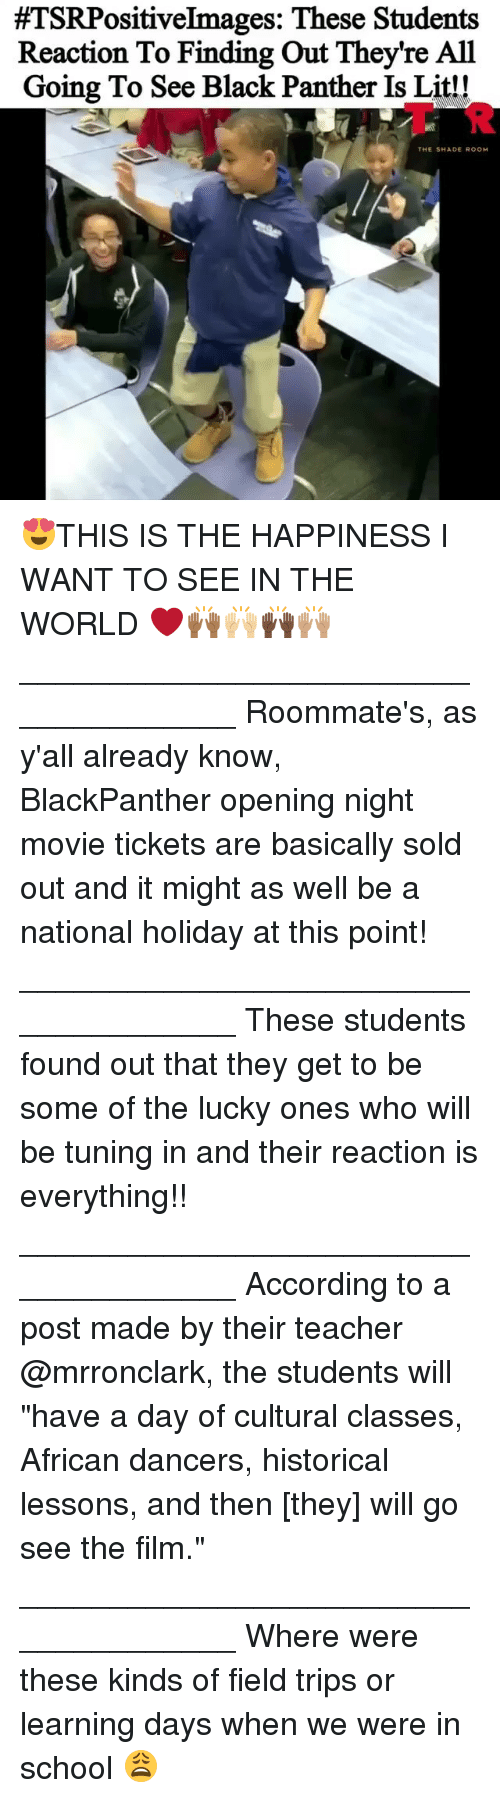 """tuning:  #TSRPositiveImages: These Students  Reaction To Finding Out They're All  Going To See Black Panther Is Lit!!  AT R  THE SHADE ROOM 😍THIS IS THE HAPPINESS I WANT TO SEE IN THE WORLD ❤️🙌🏾🙌🏼🙌🏿🙌🏽 _____________________________________ Roommate's, as y'all already know, BlackPanther opening night movie tickets are basically sold out and it might as well be a national holiday at this point! _____________________________________ These students found out that they get to be some of the lucky ones who will be tuning in and their reaction is everything!! _____________________________________ According to a post made by their teacher @mrronclark, the students will """"have a day of cultural classes, African dancers, historical lessons, and then [they] will go see the film."""" _____________________________________ Where were these kinds of field trips or learning days when we were in school 😩"""